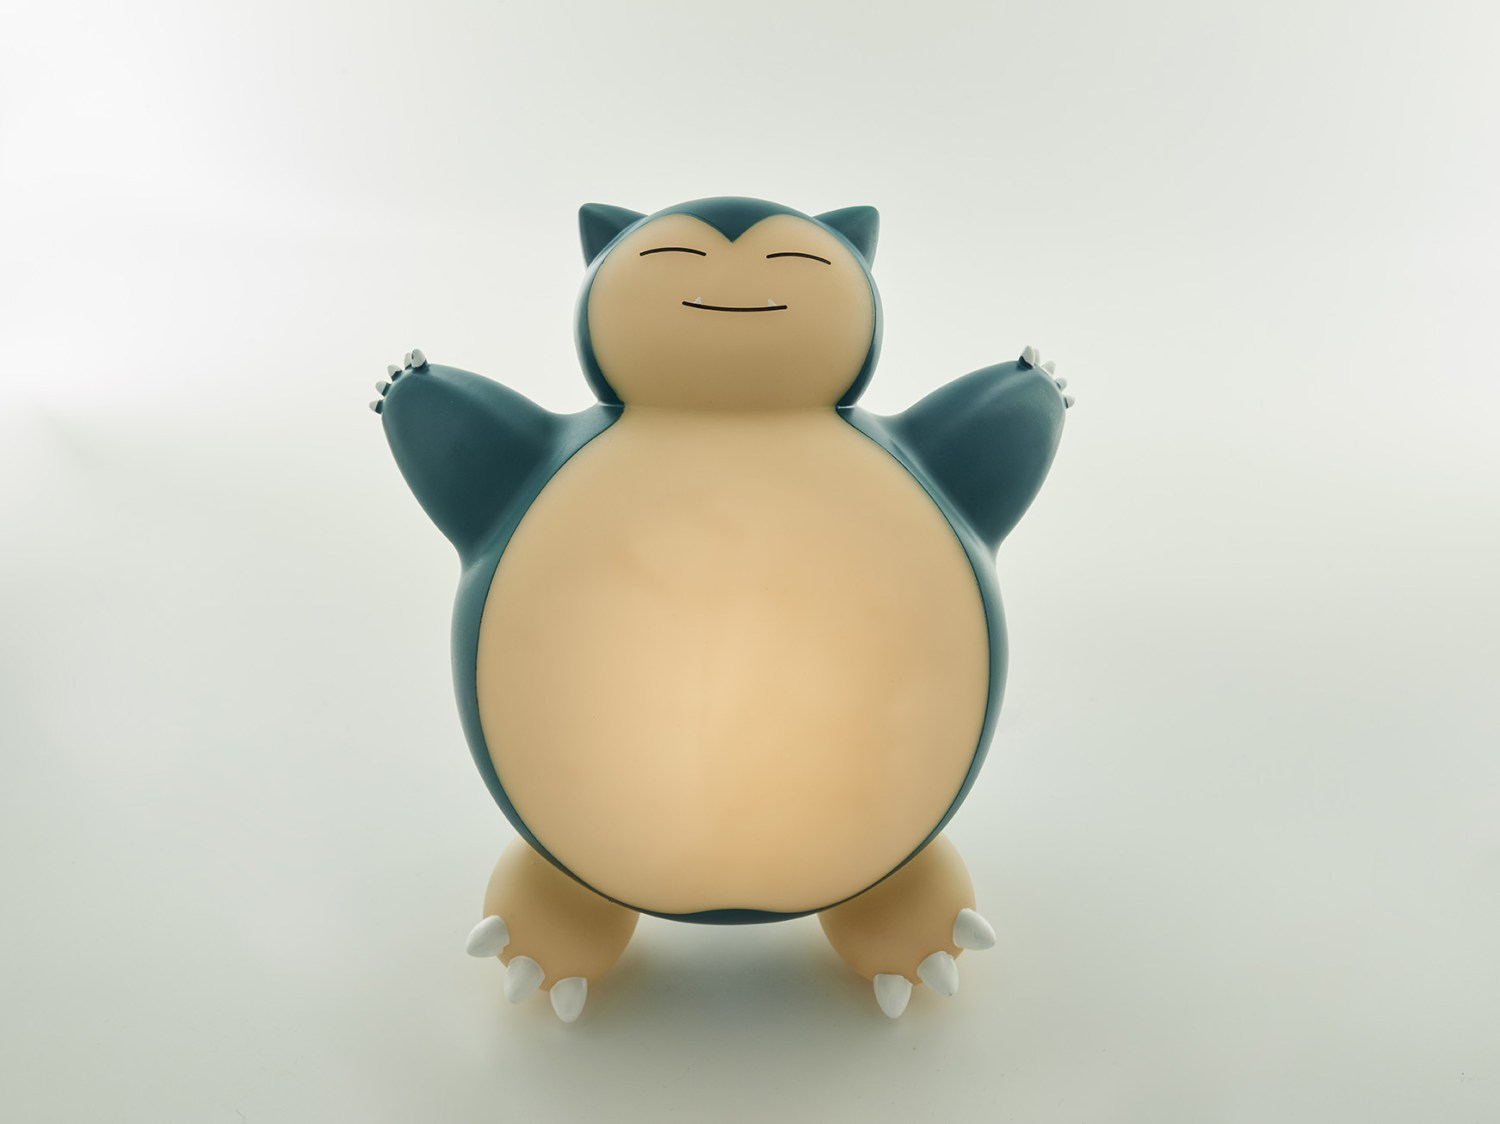 Pokémon snorlax led lamp face view